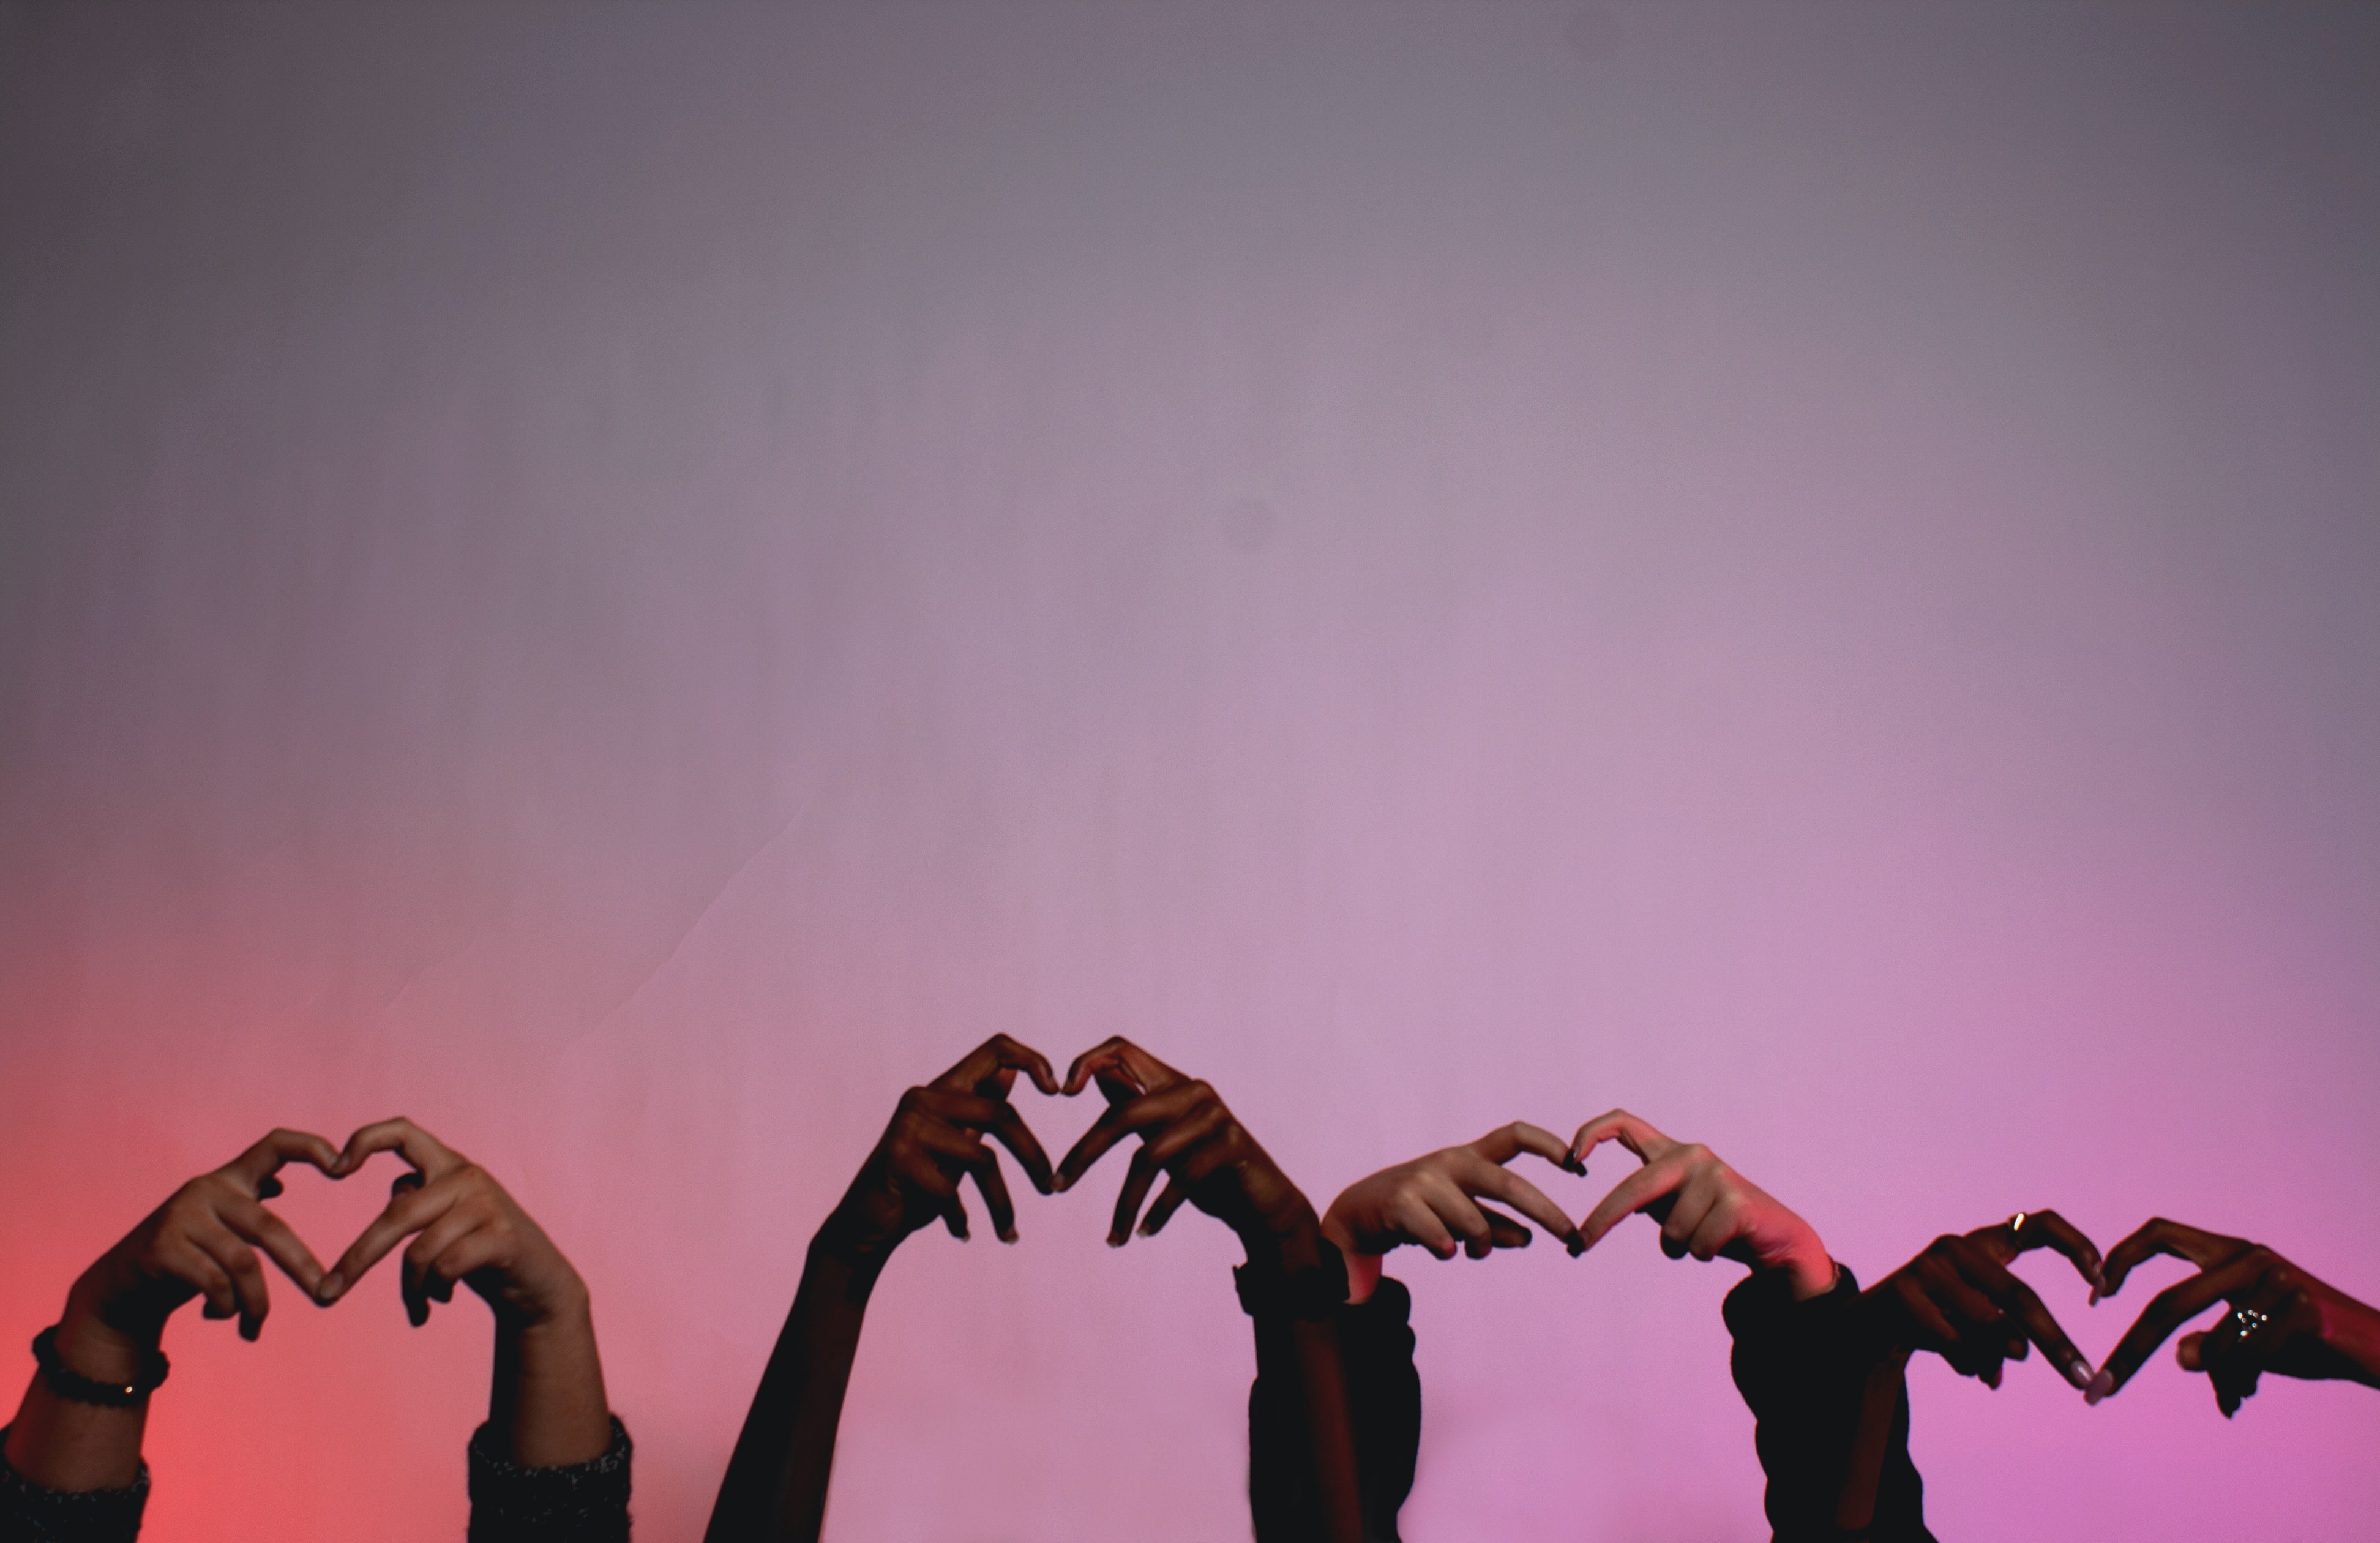 Hands in air in shape of hearts